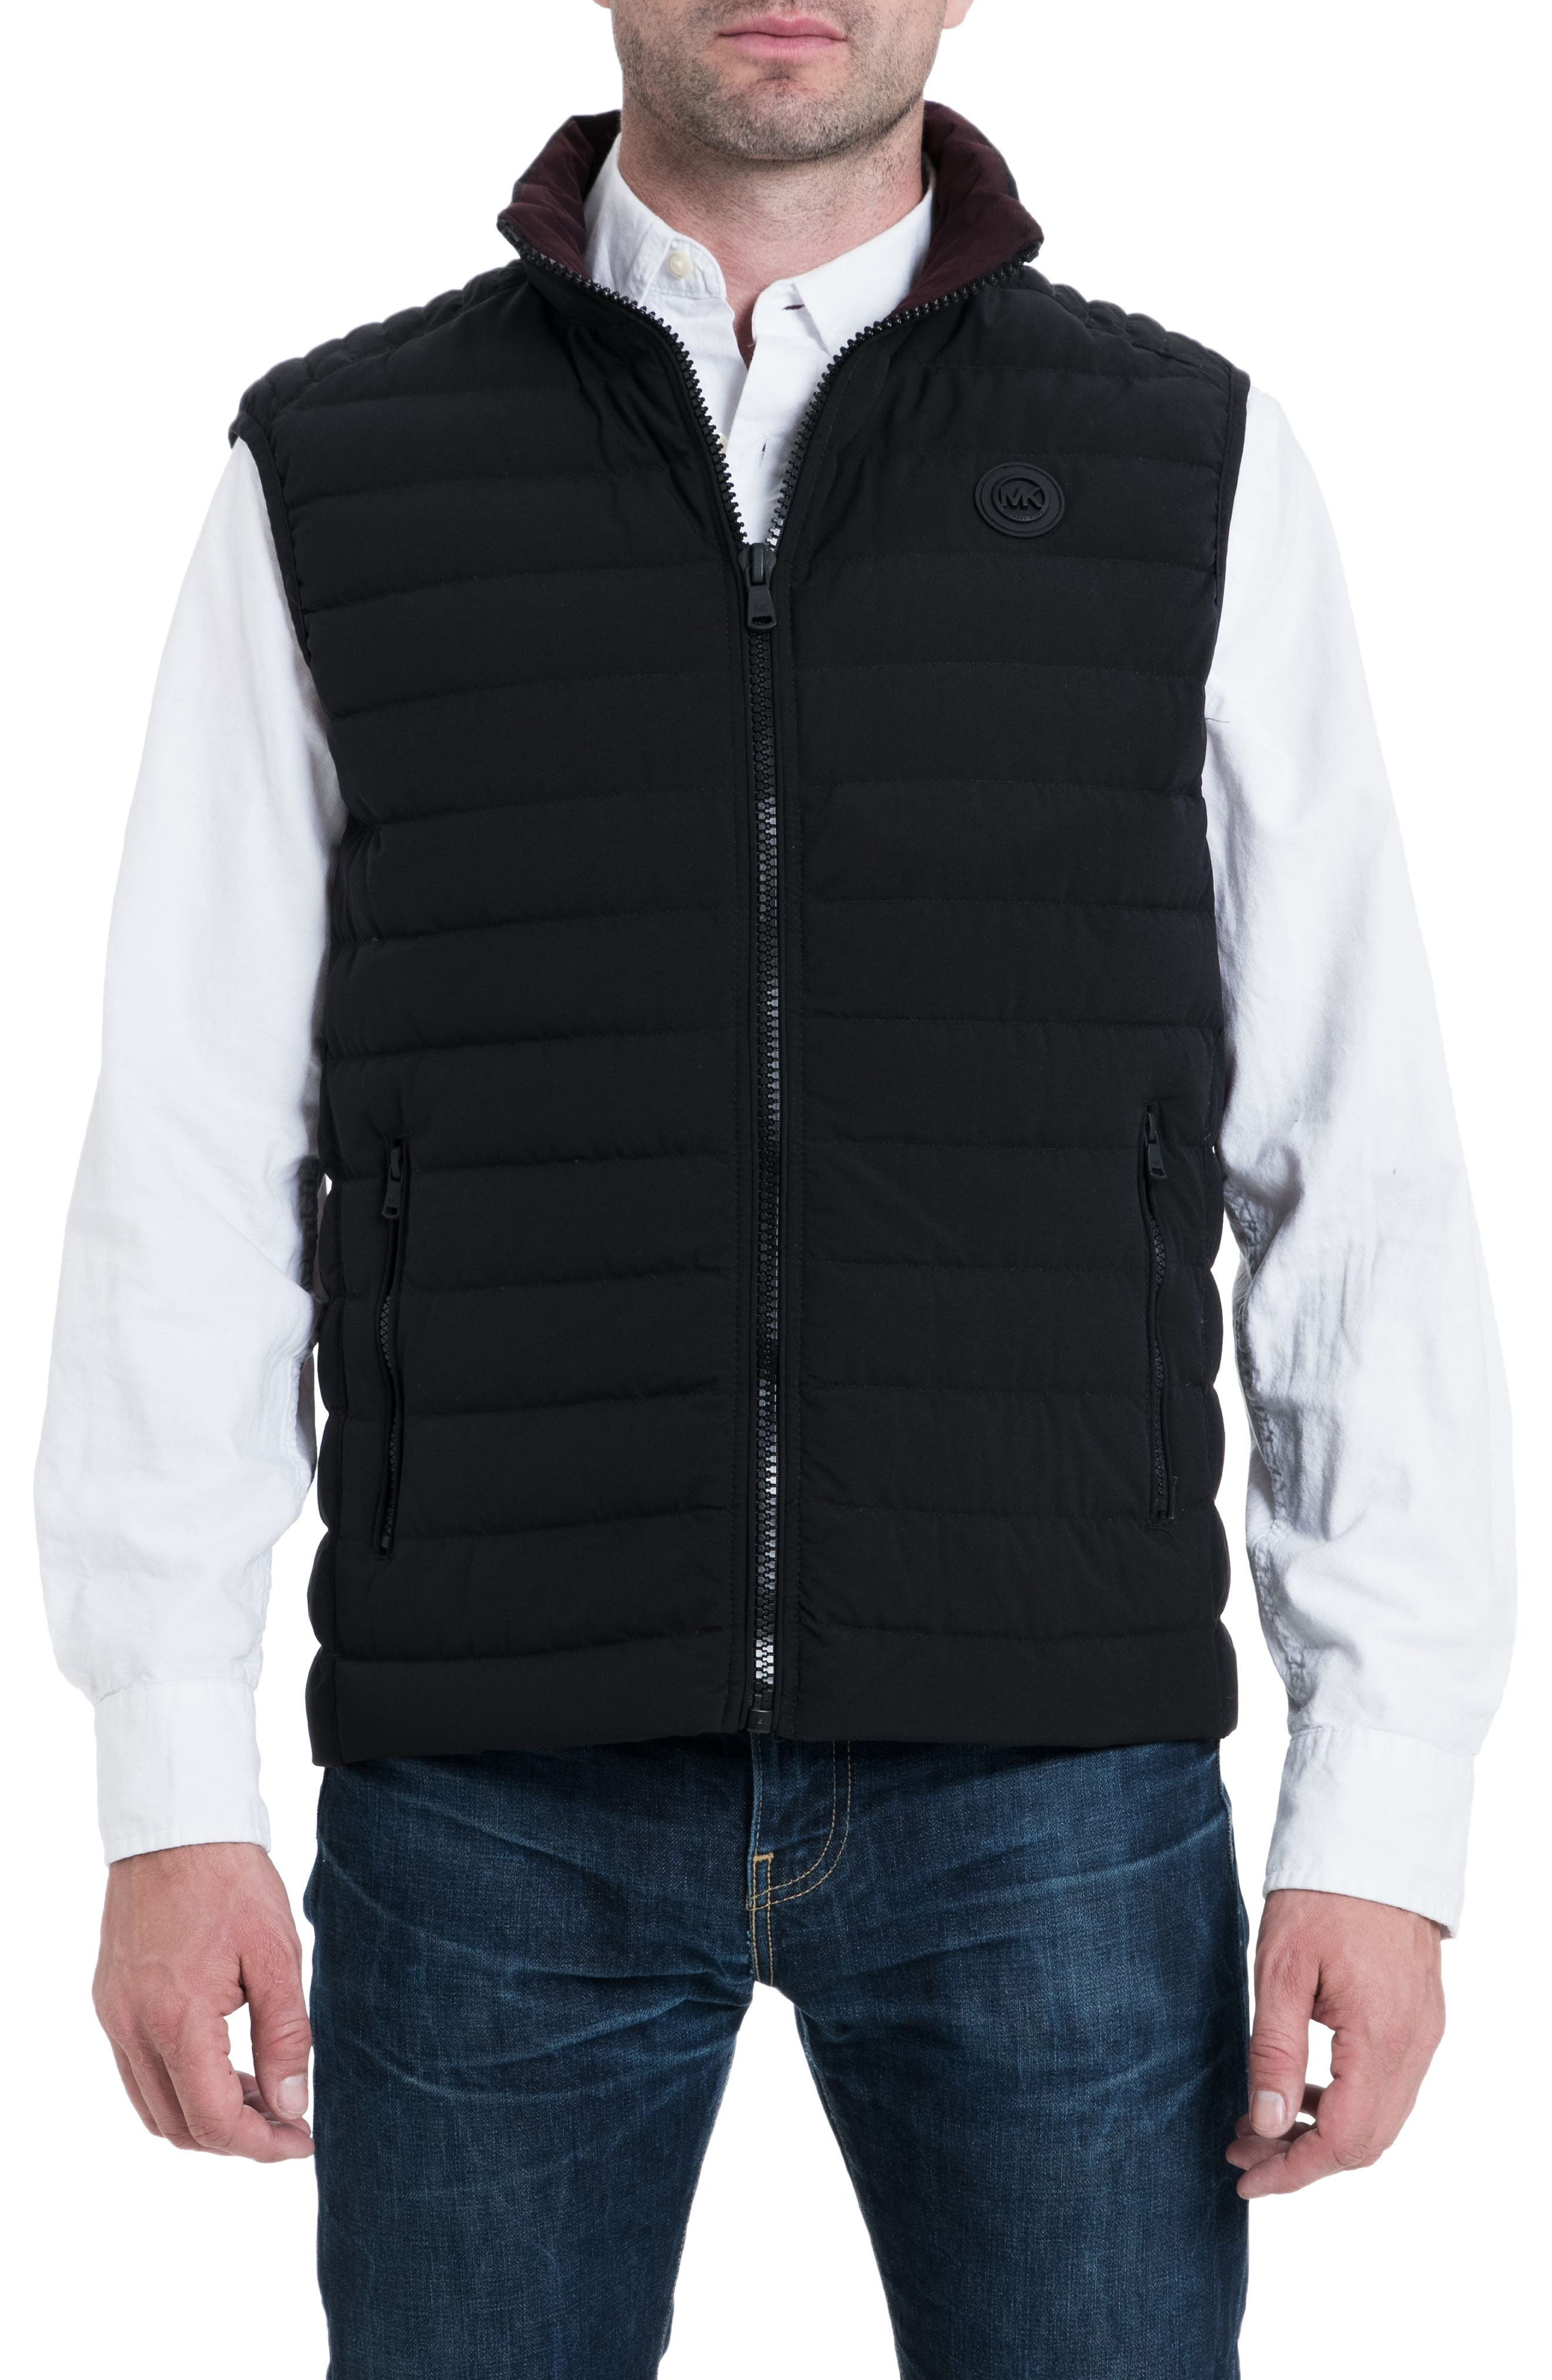 Marshall Vest,                             Main thumbnail 1, color,                             BLACK